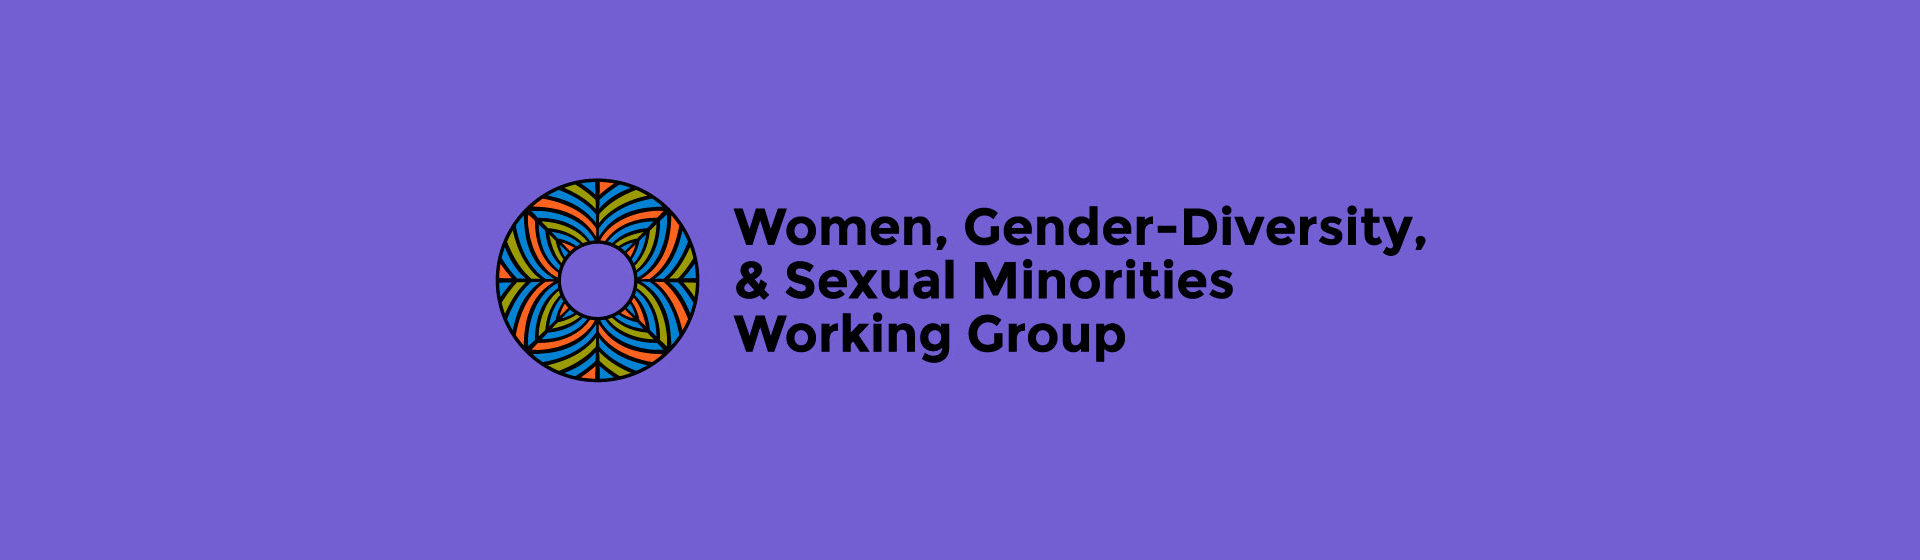 woman-gender-diversity-and-sexual-minorities-working-group-final-banner